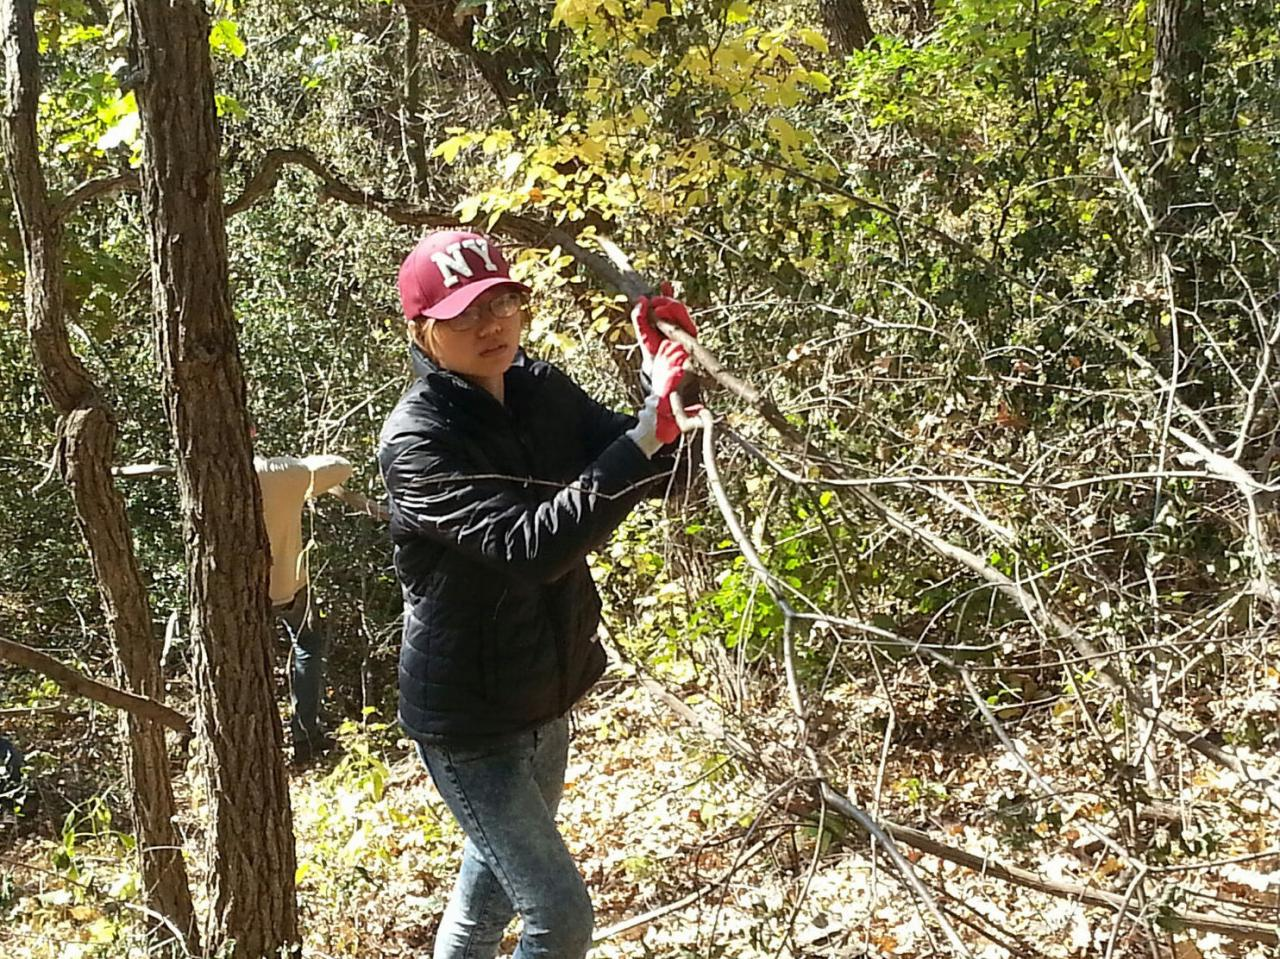 Volunteer hauling brush from the oak woodlands